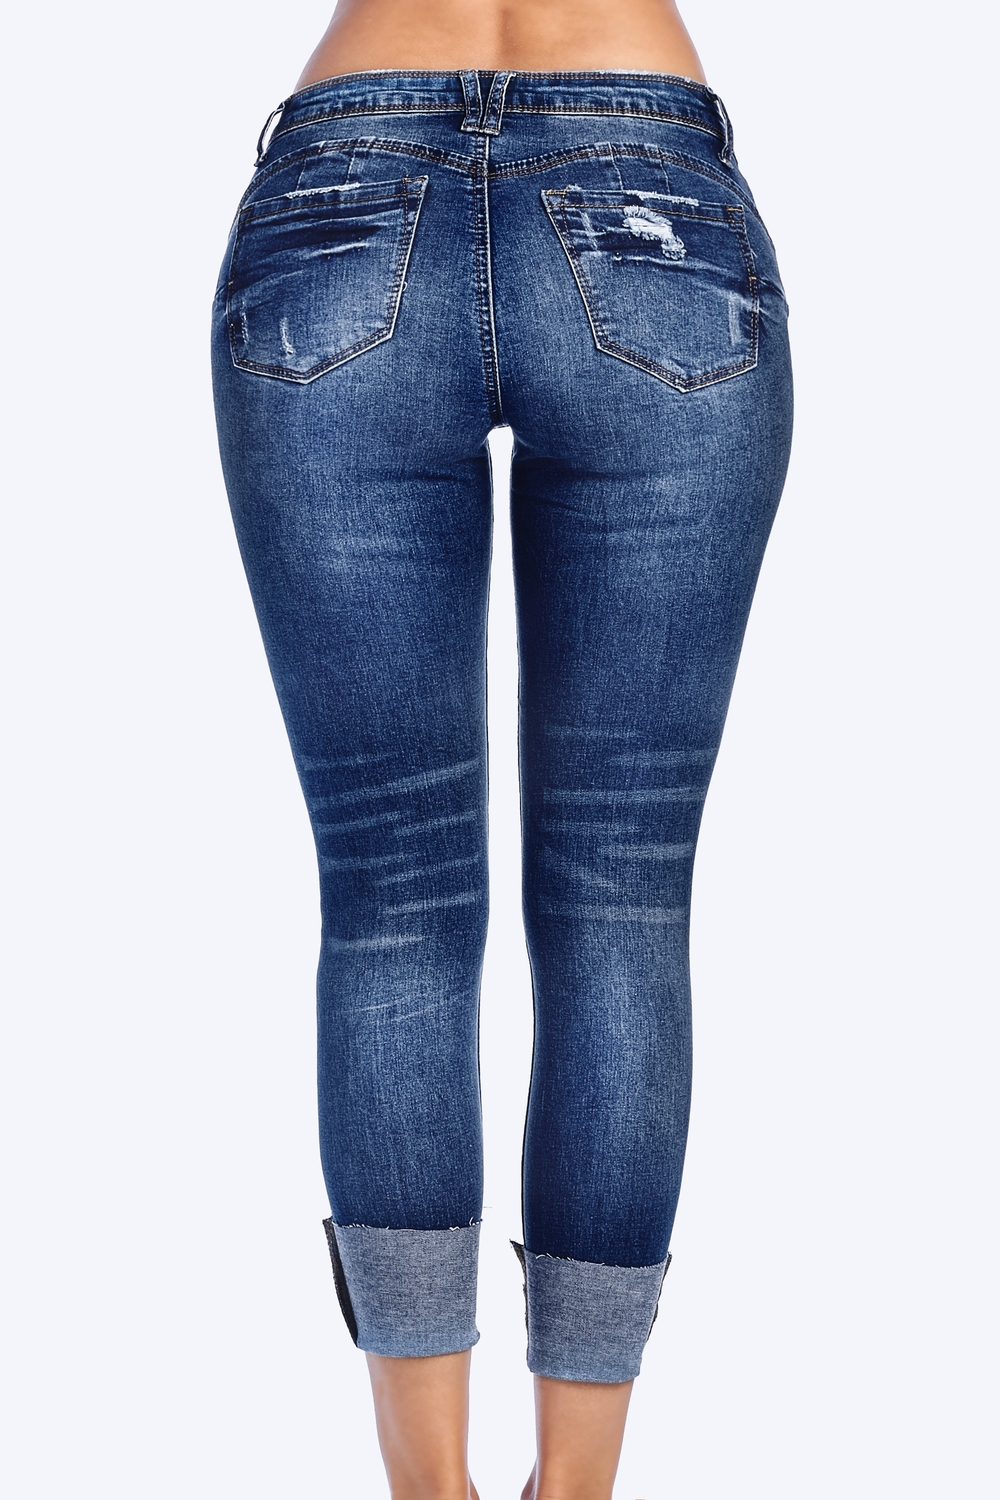 Distressed Butt Lifting Skinny Jeans with Comfort Stretch